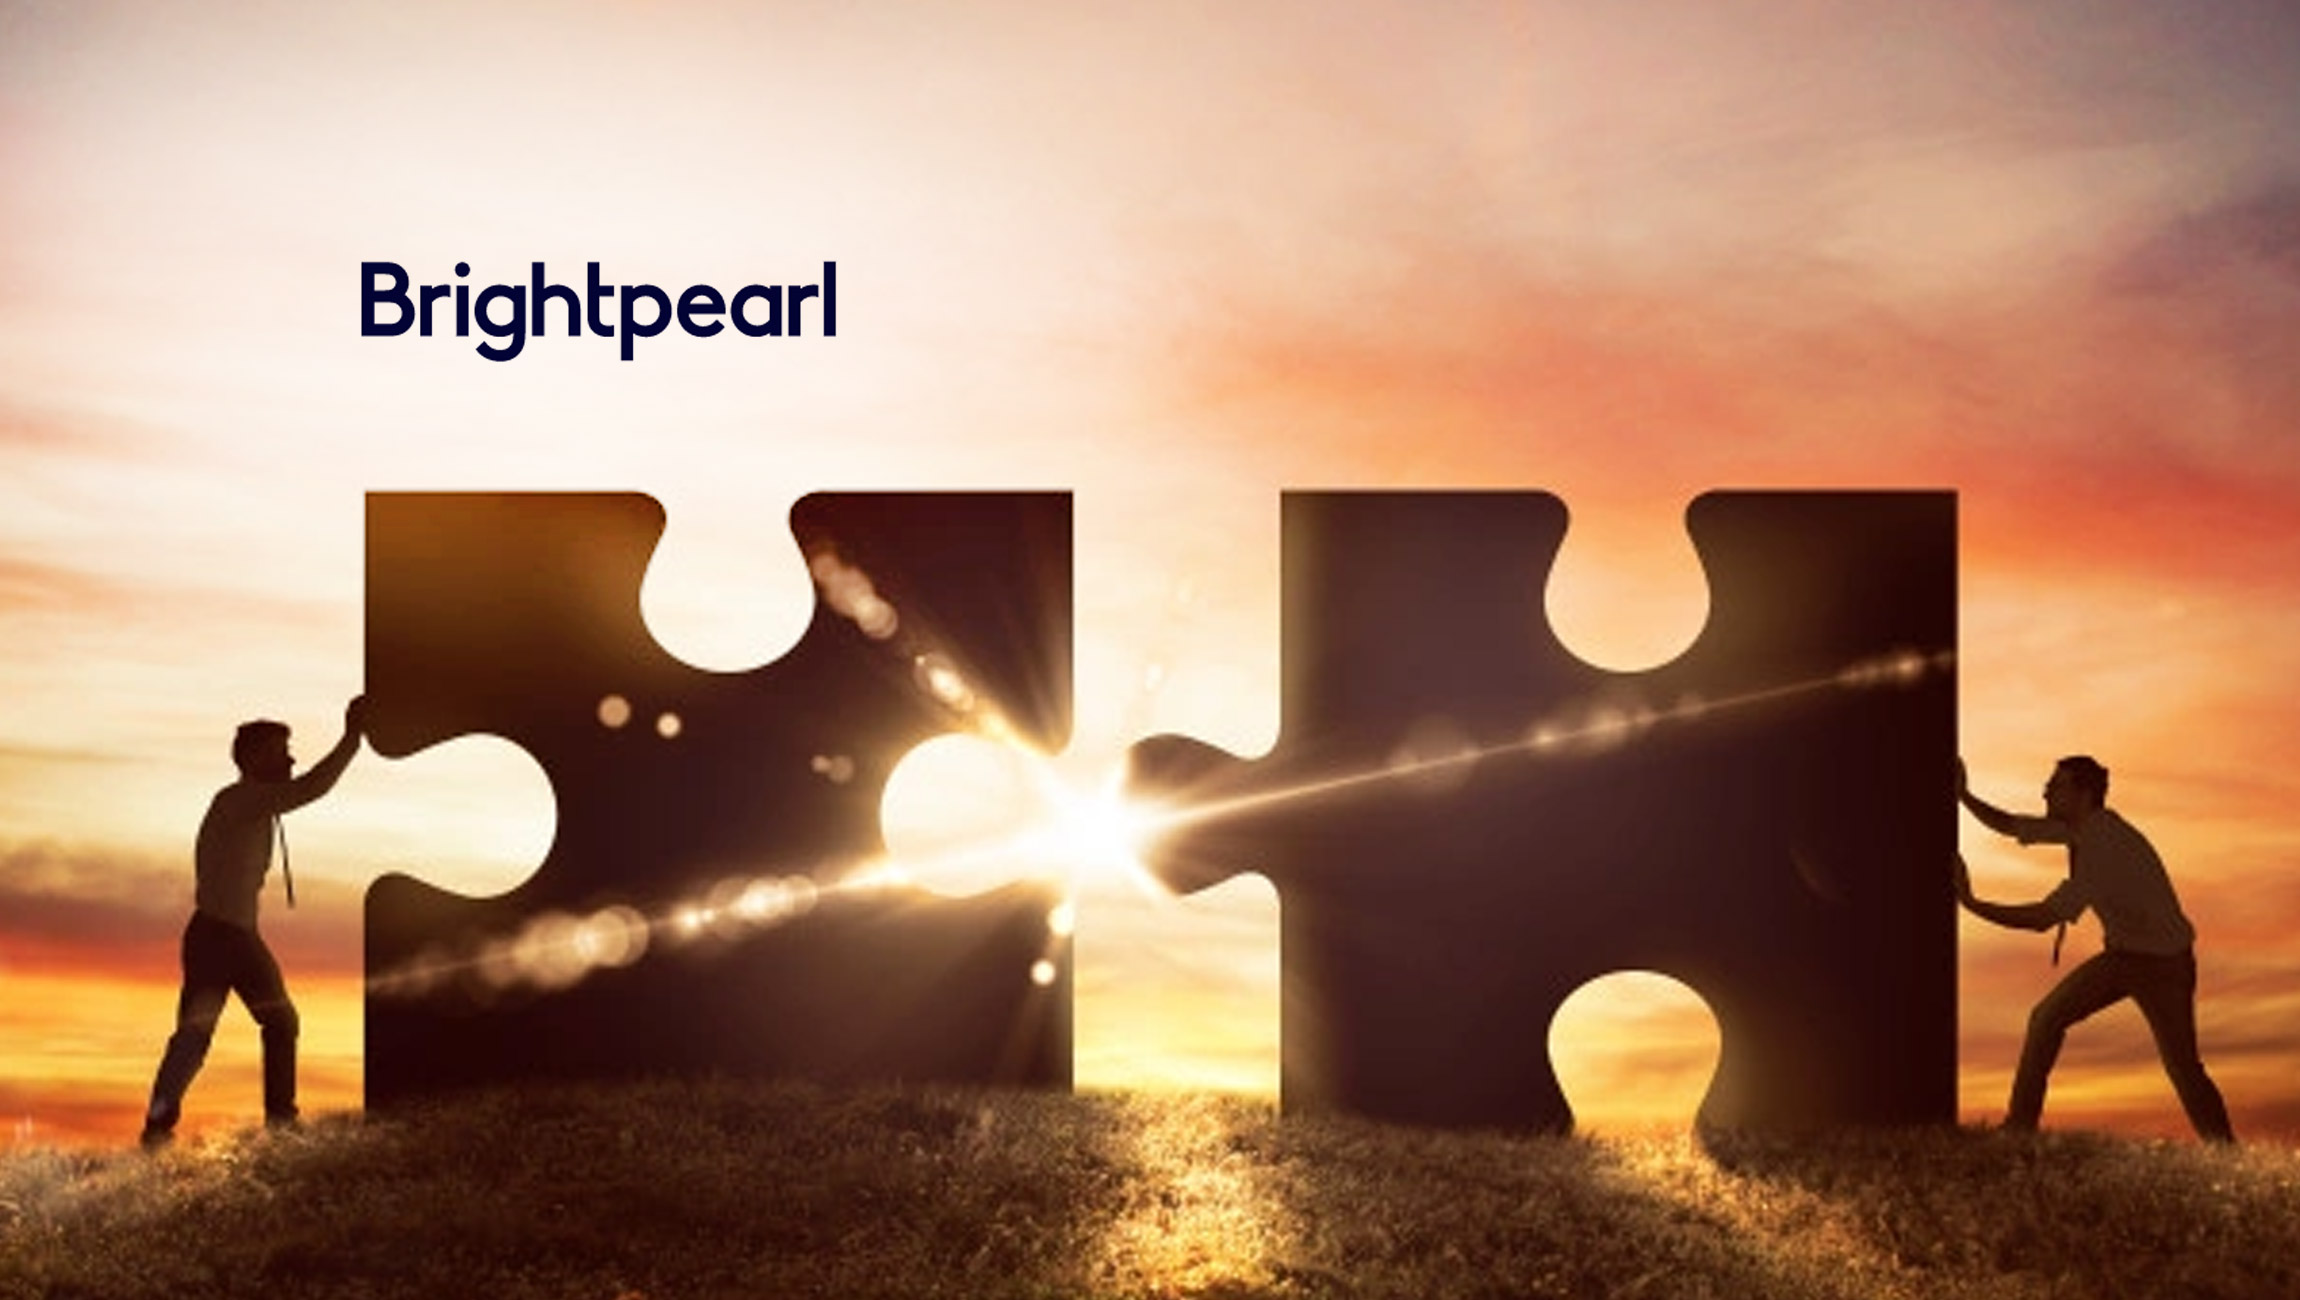 Brightpearl-Acquires-Inventory-Planner_-Giving-Savvy-Merchants-Better-Ways-To-Accurately-Predict-Demand